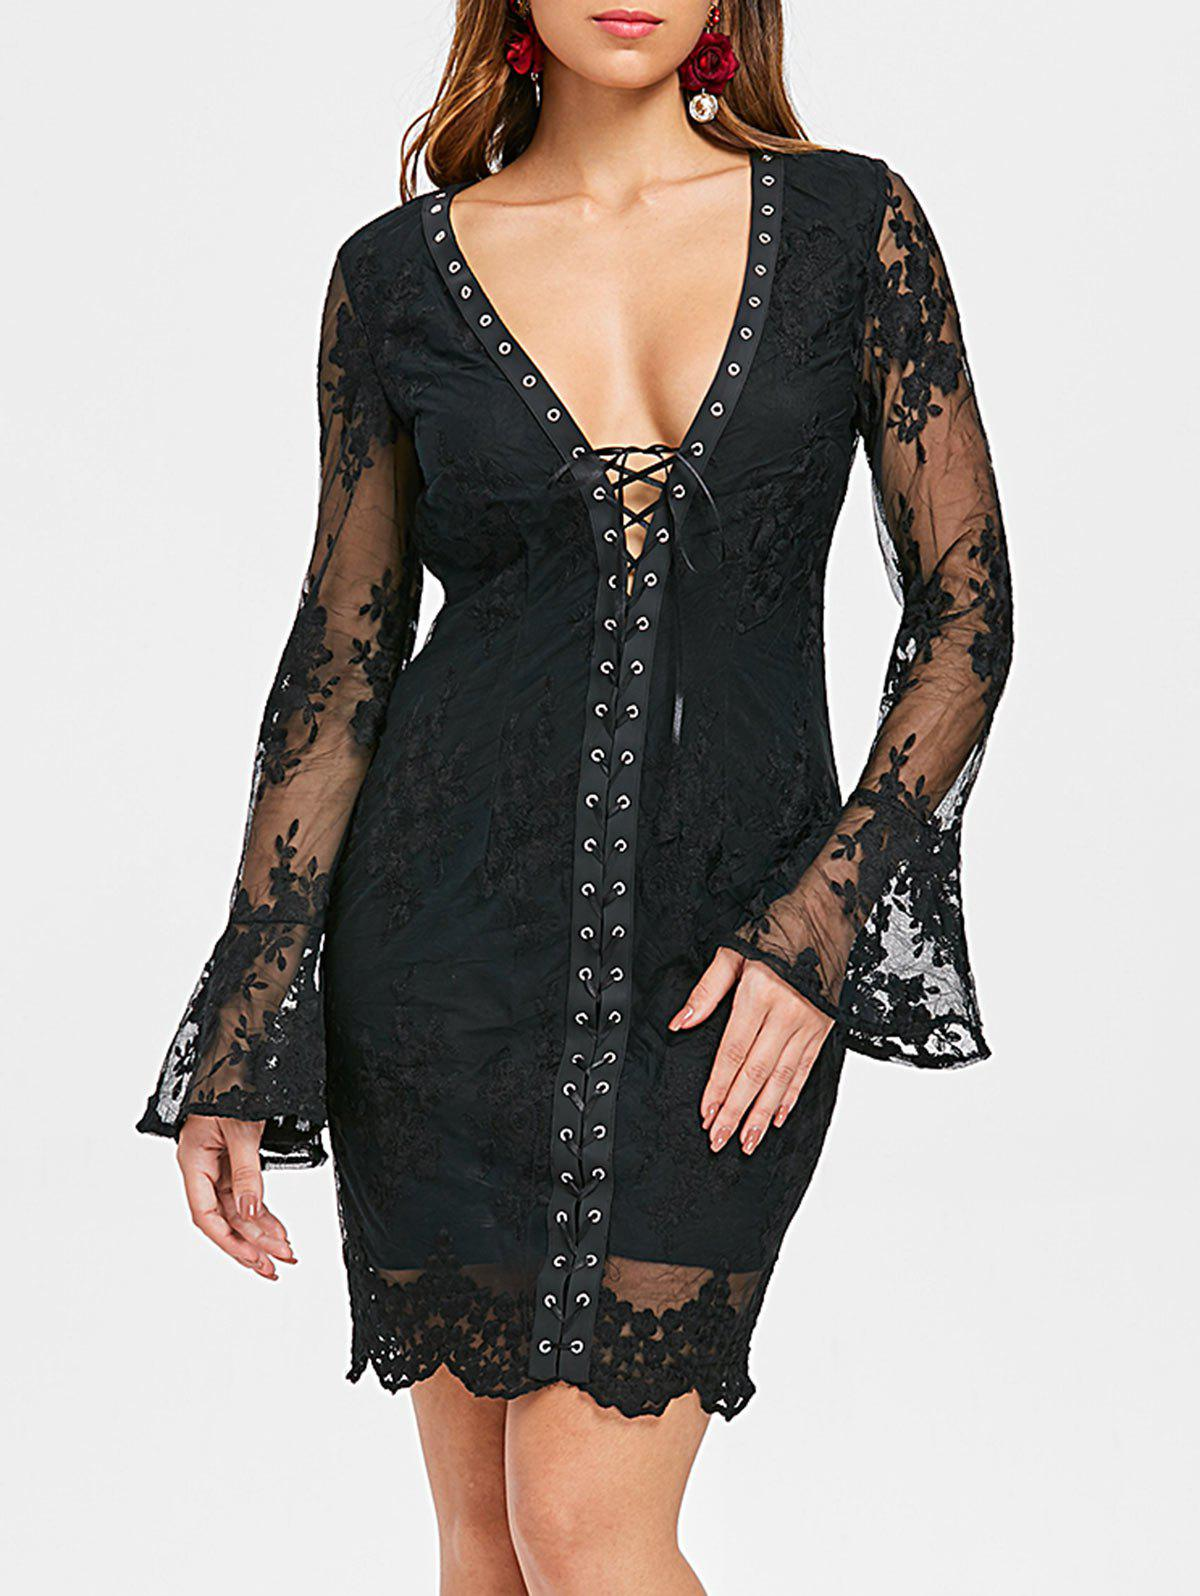 Latest Low Cut Lace Up Embroidered Dress